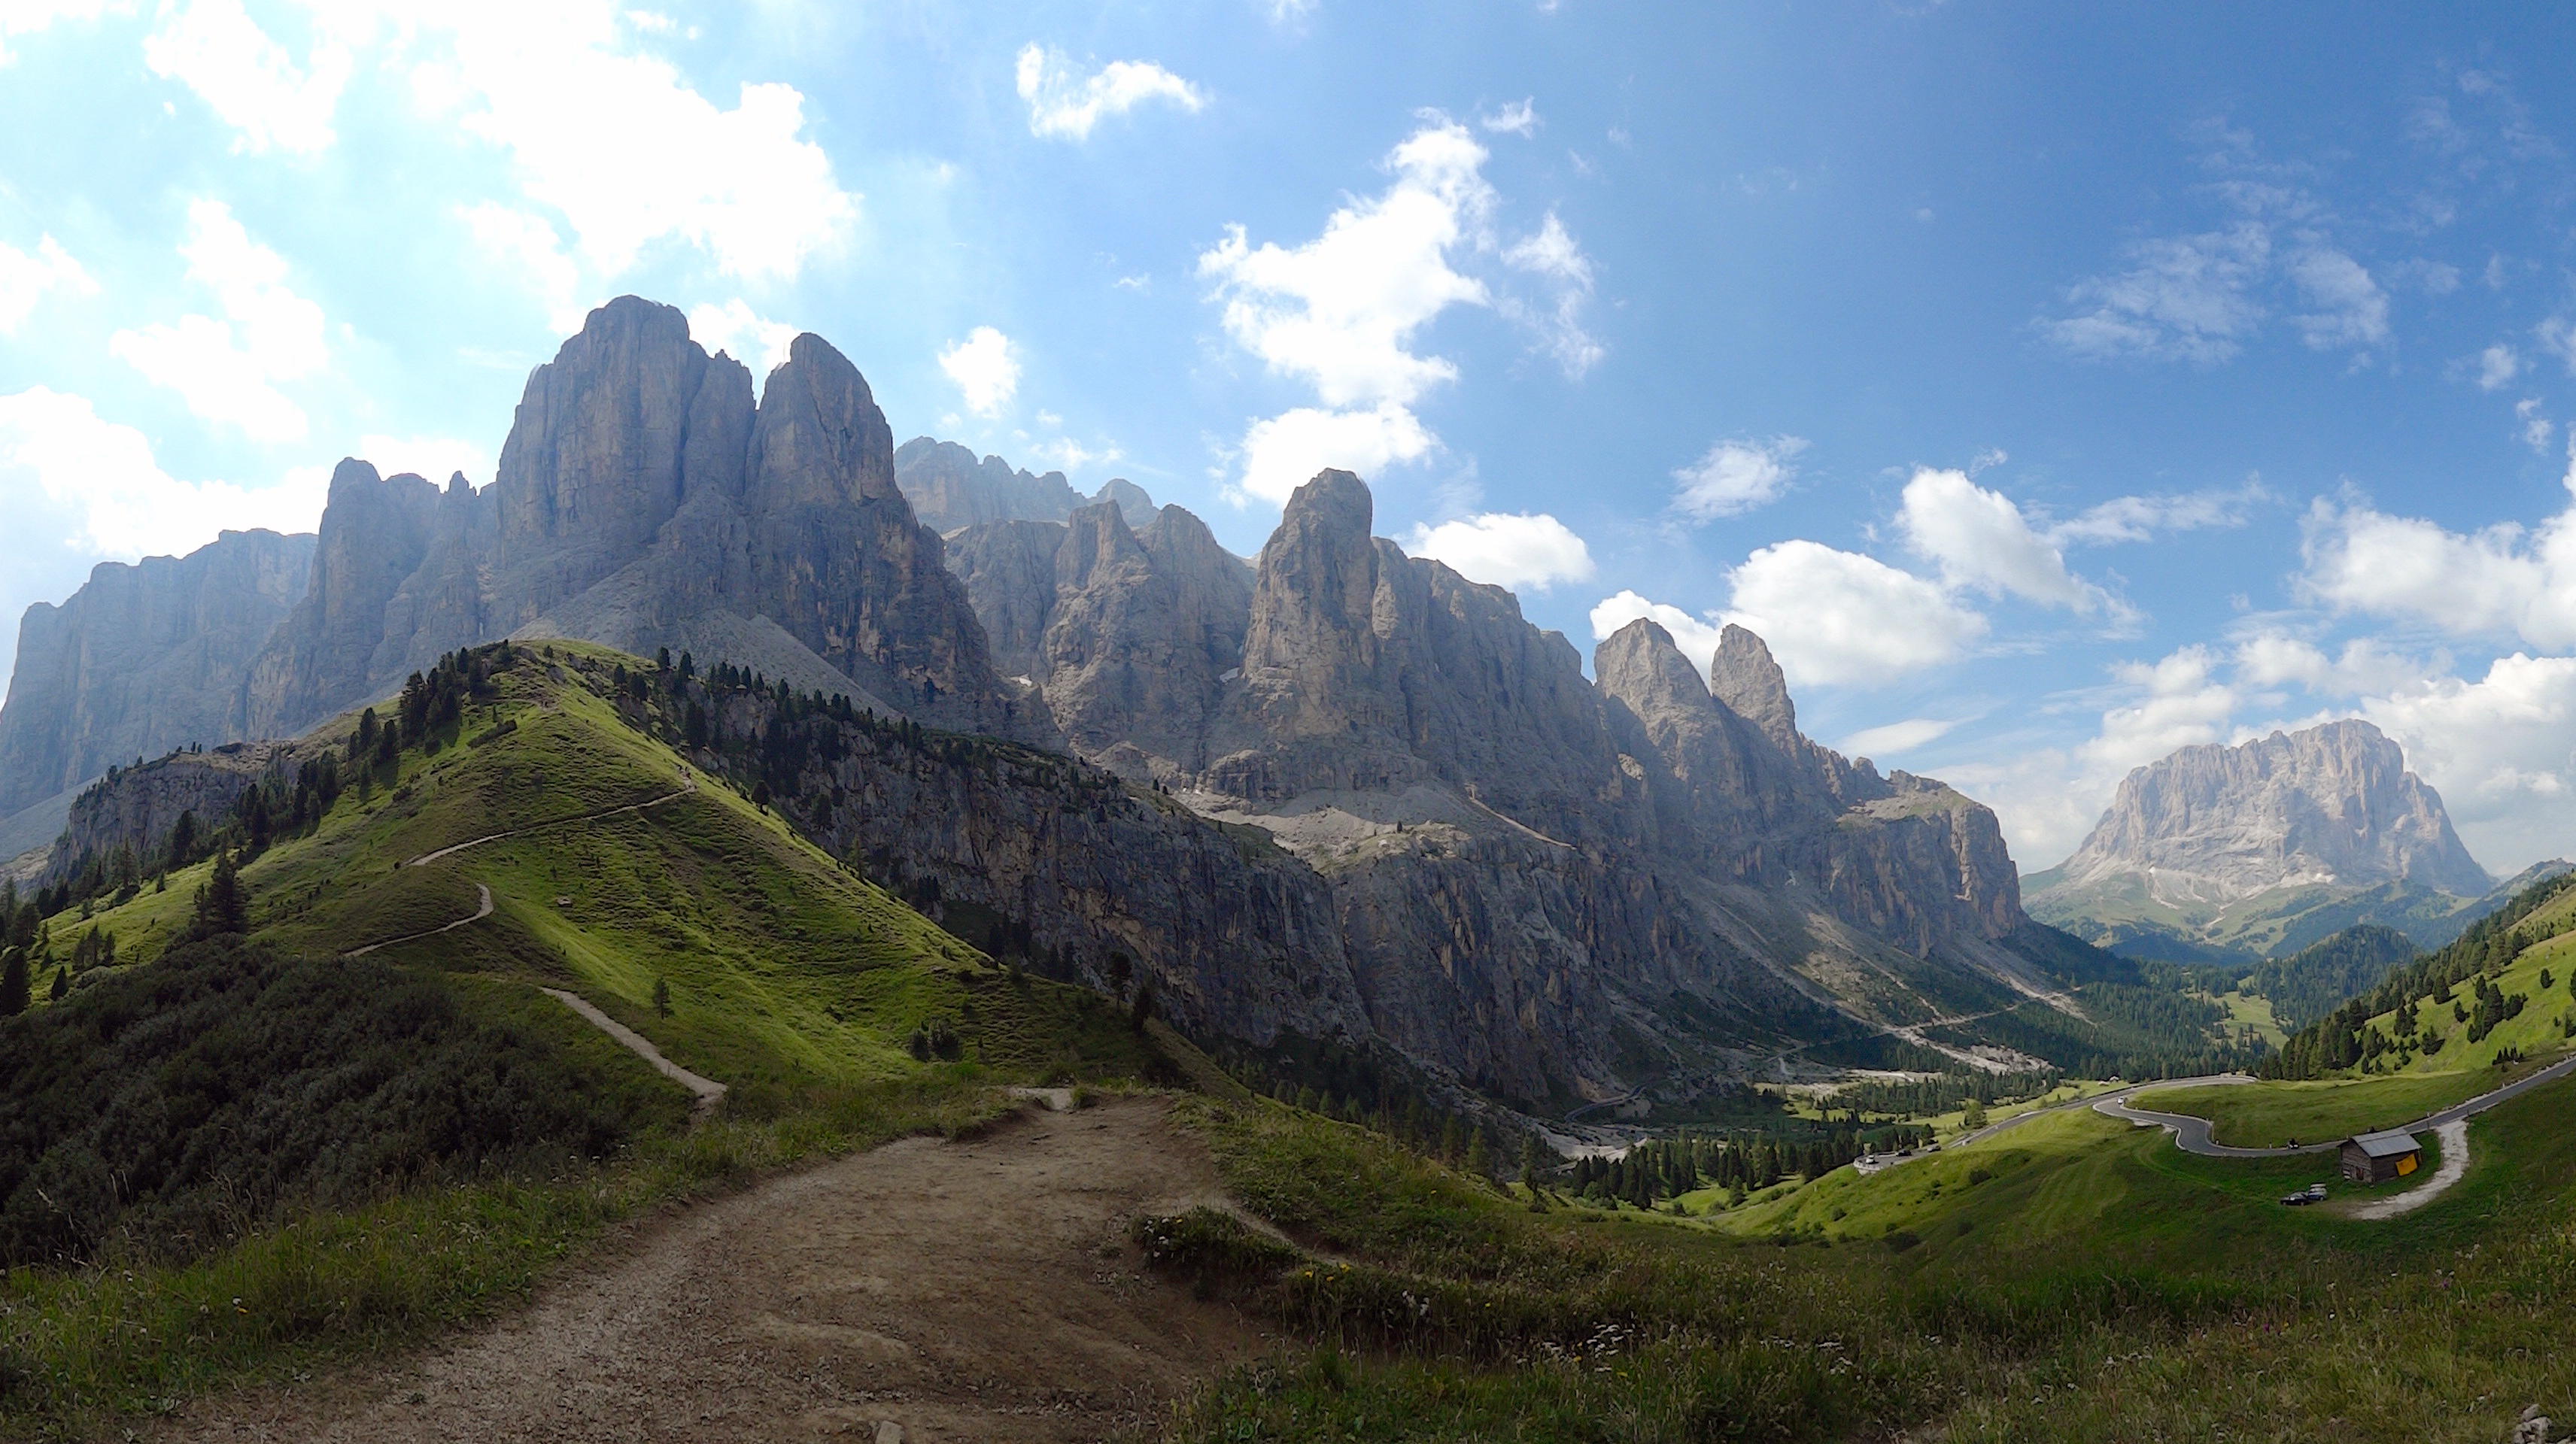 150 M To Ft Panorama Of The Dolomites Mountains Sella Group Or